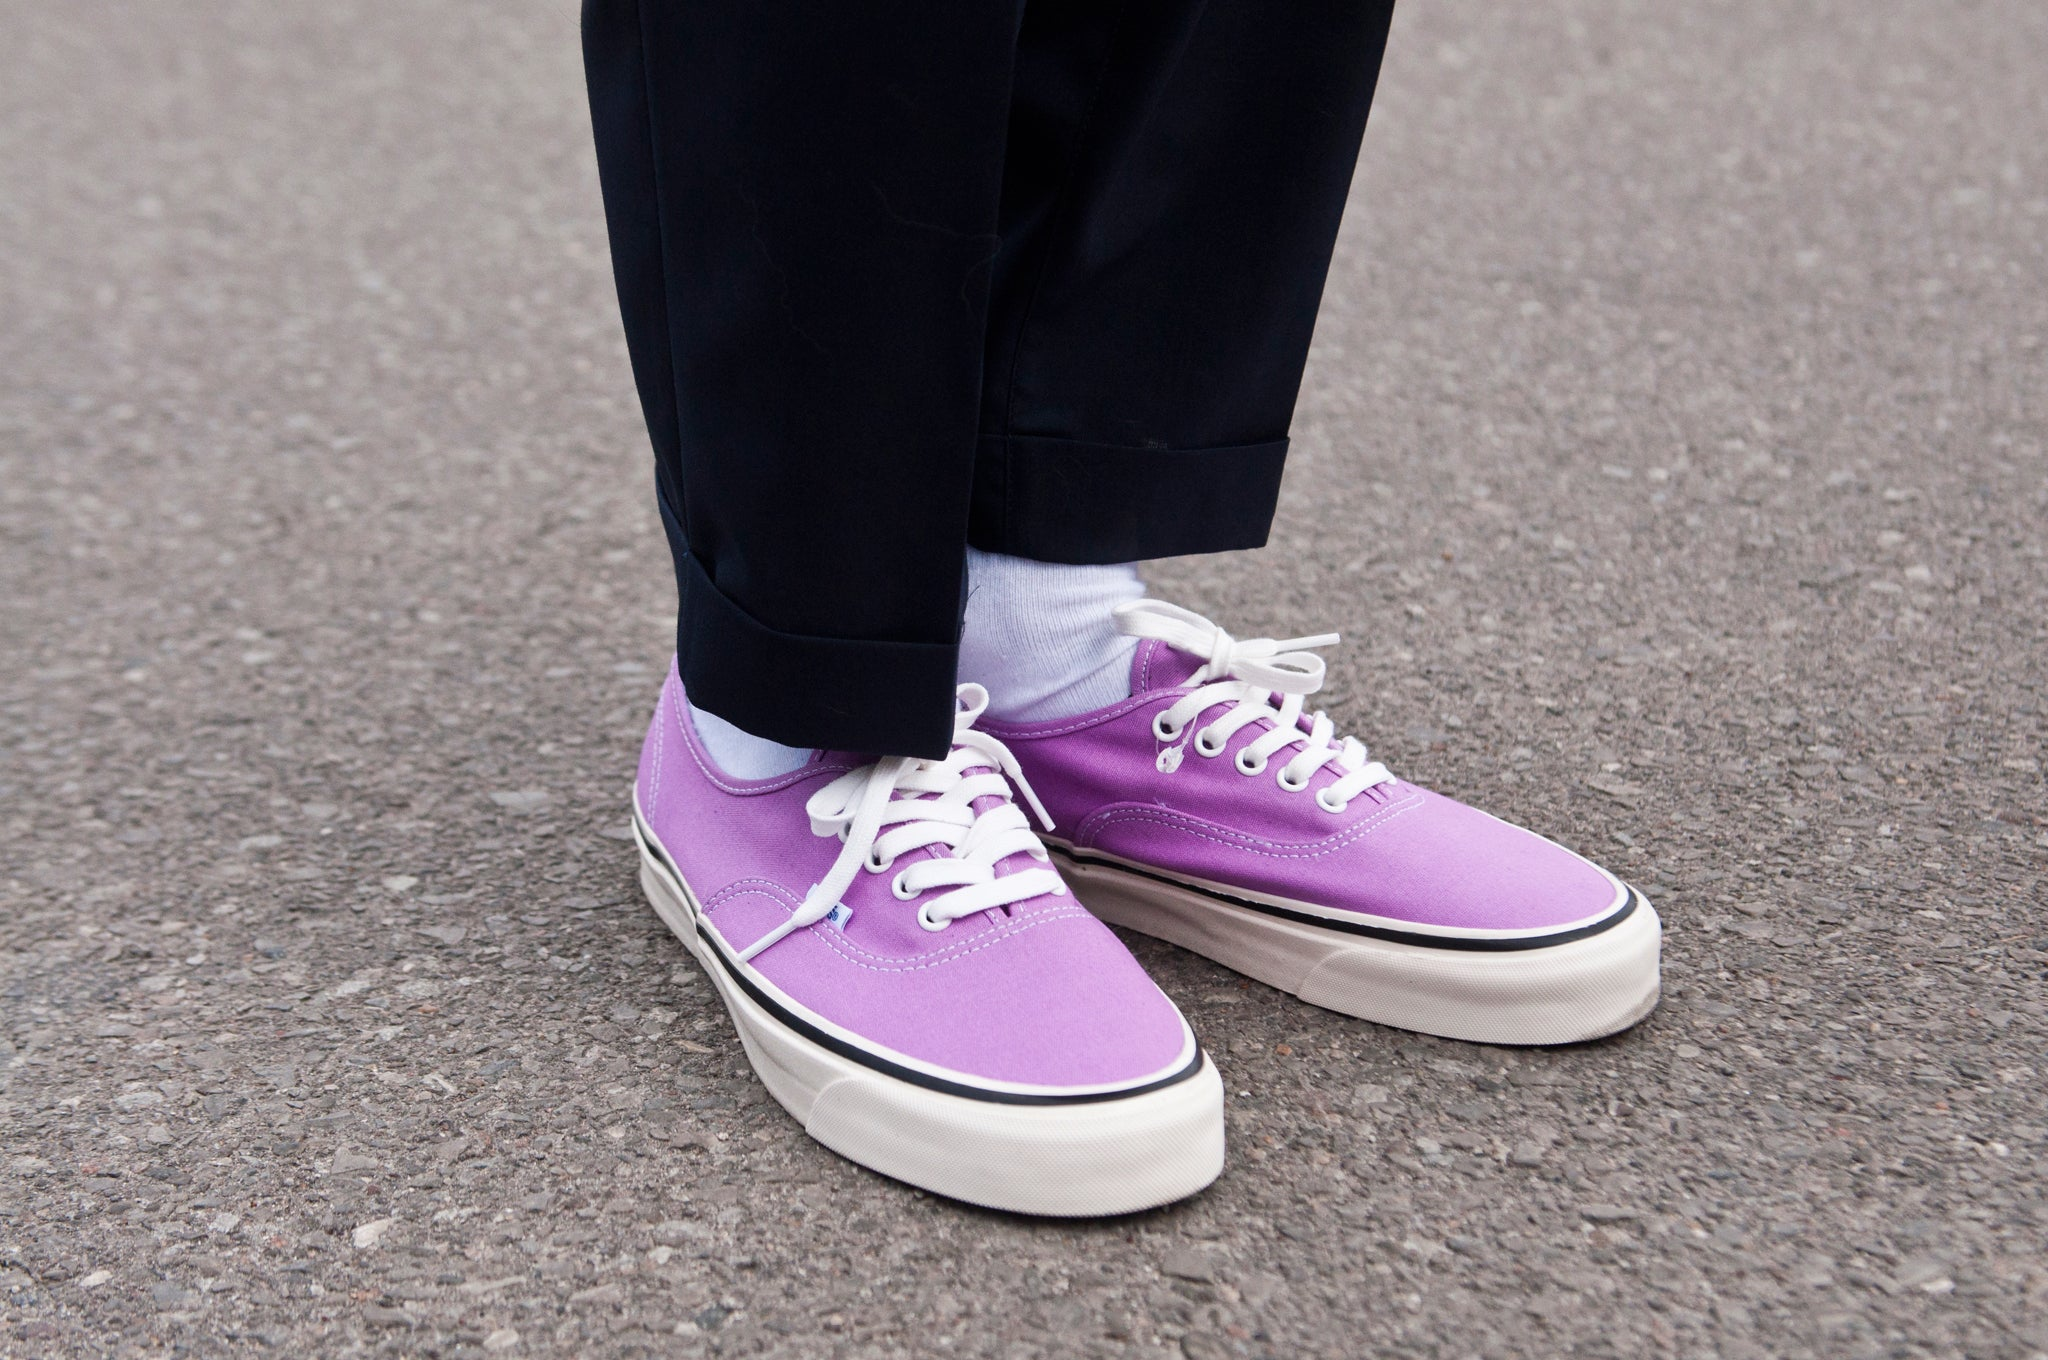 Vans Anaheim Factory Authentic 44 DX OG Lilac